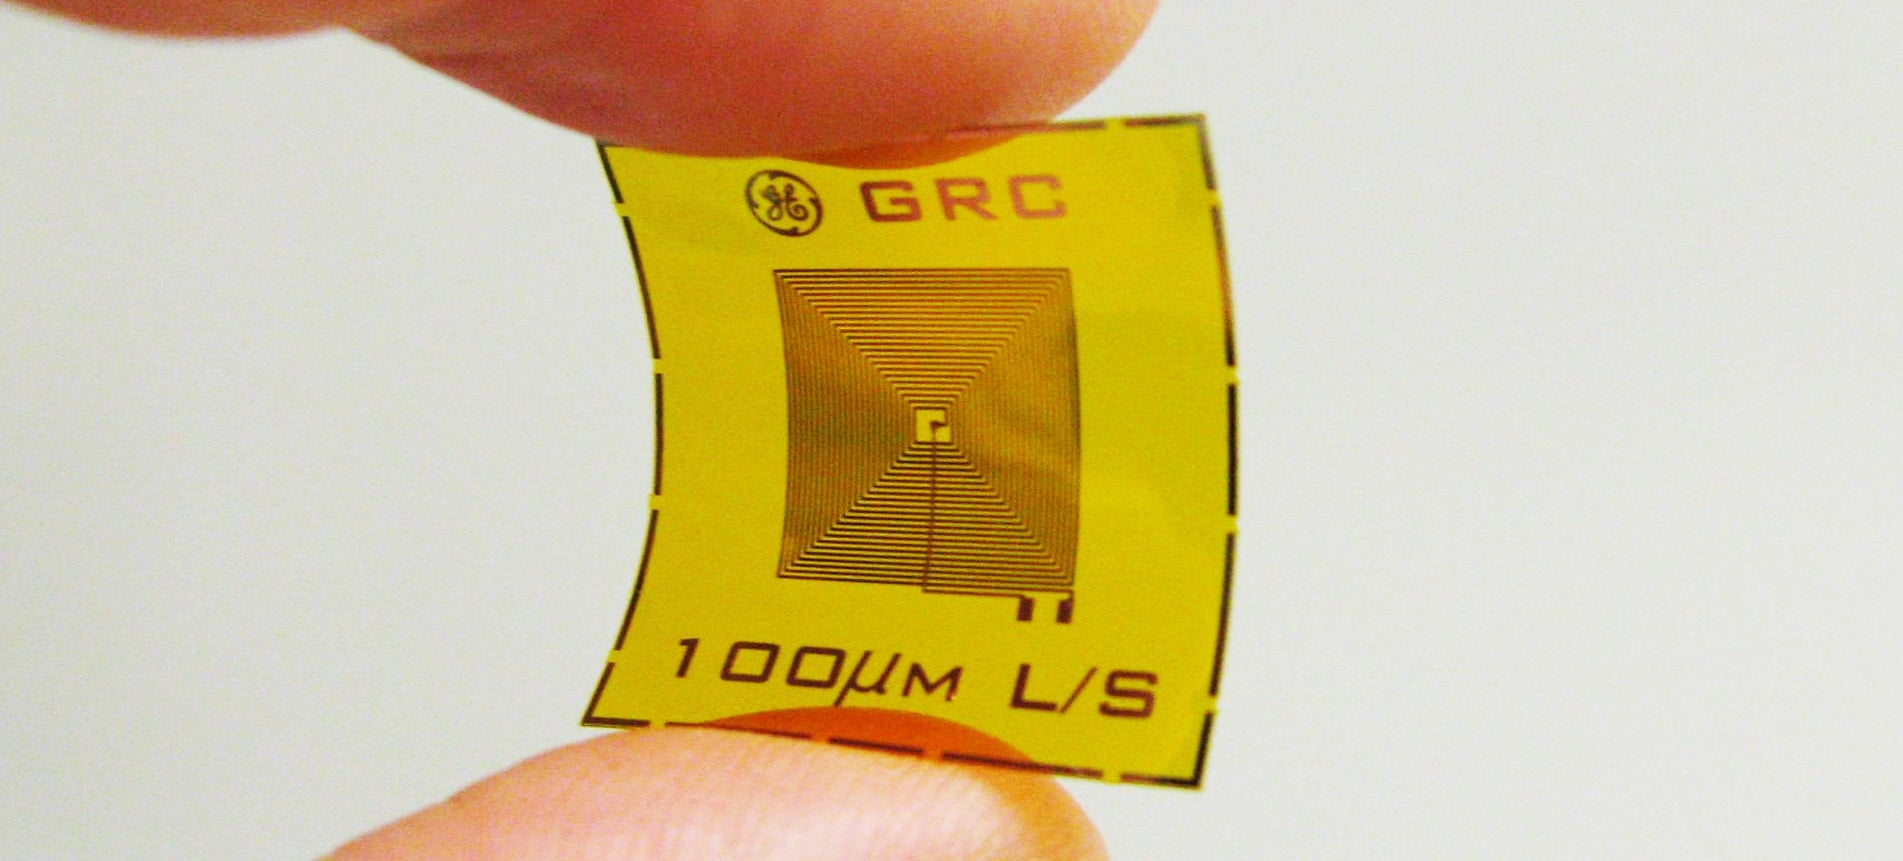 This Stamp-Sized Sensor Can Sniff Out Explosives Using RFID Tags